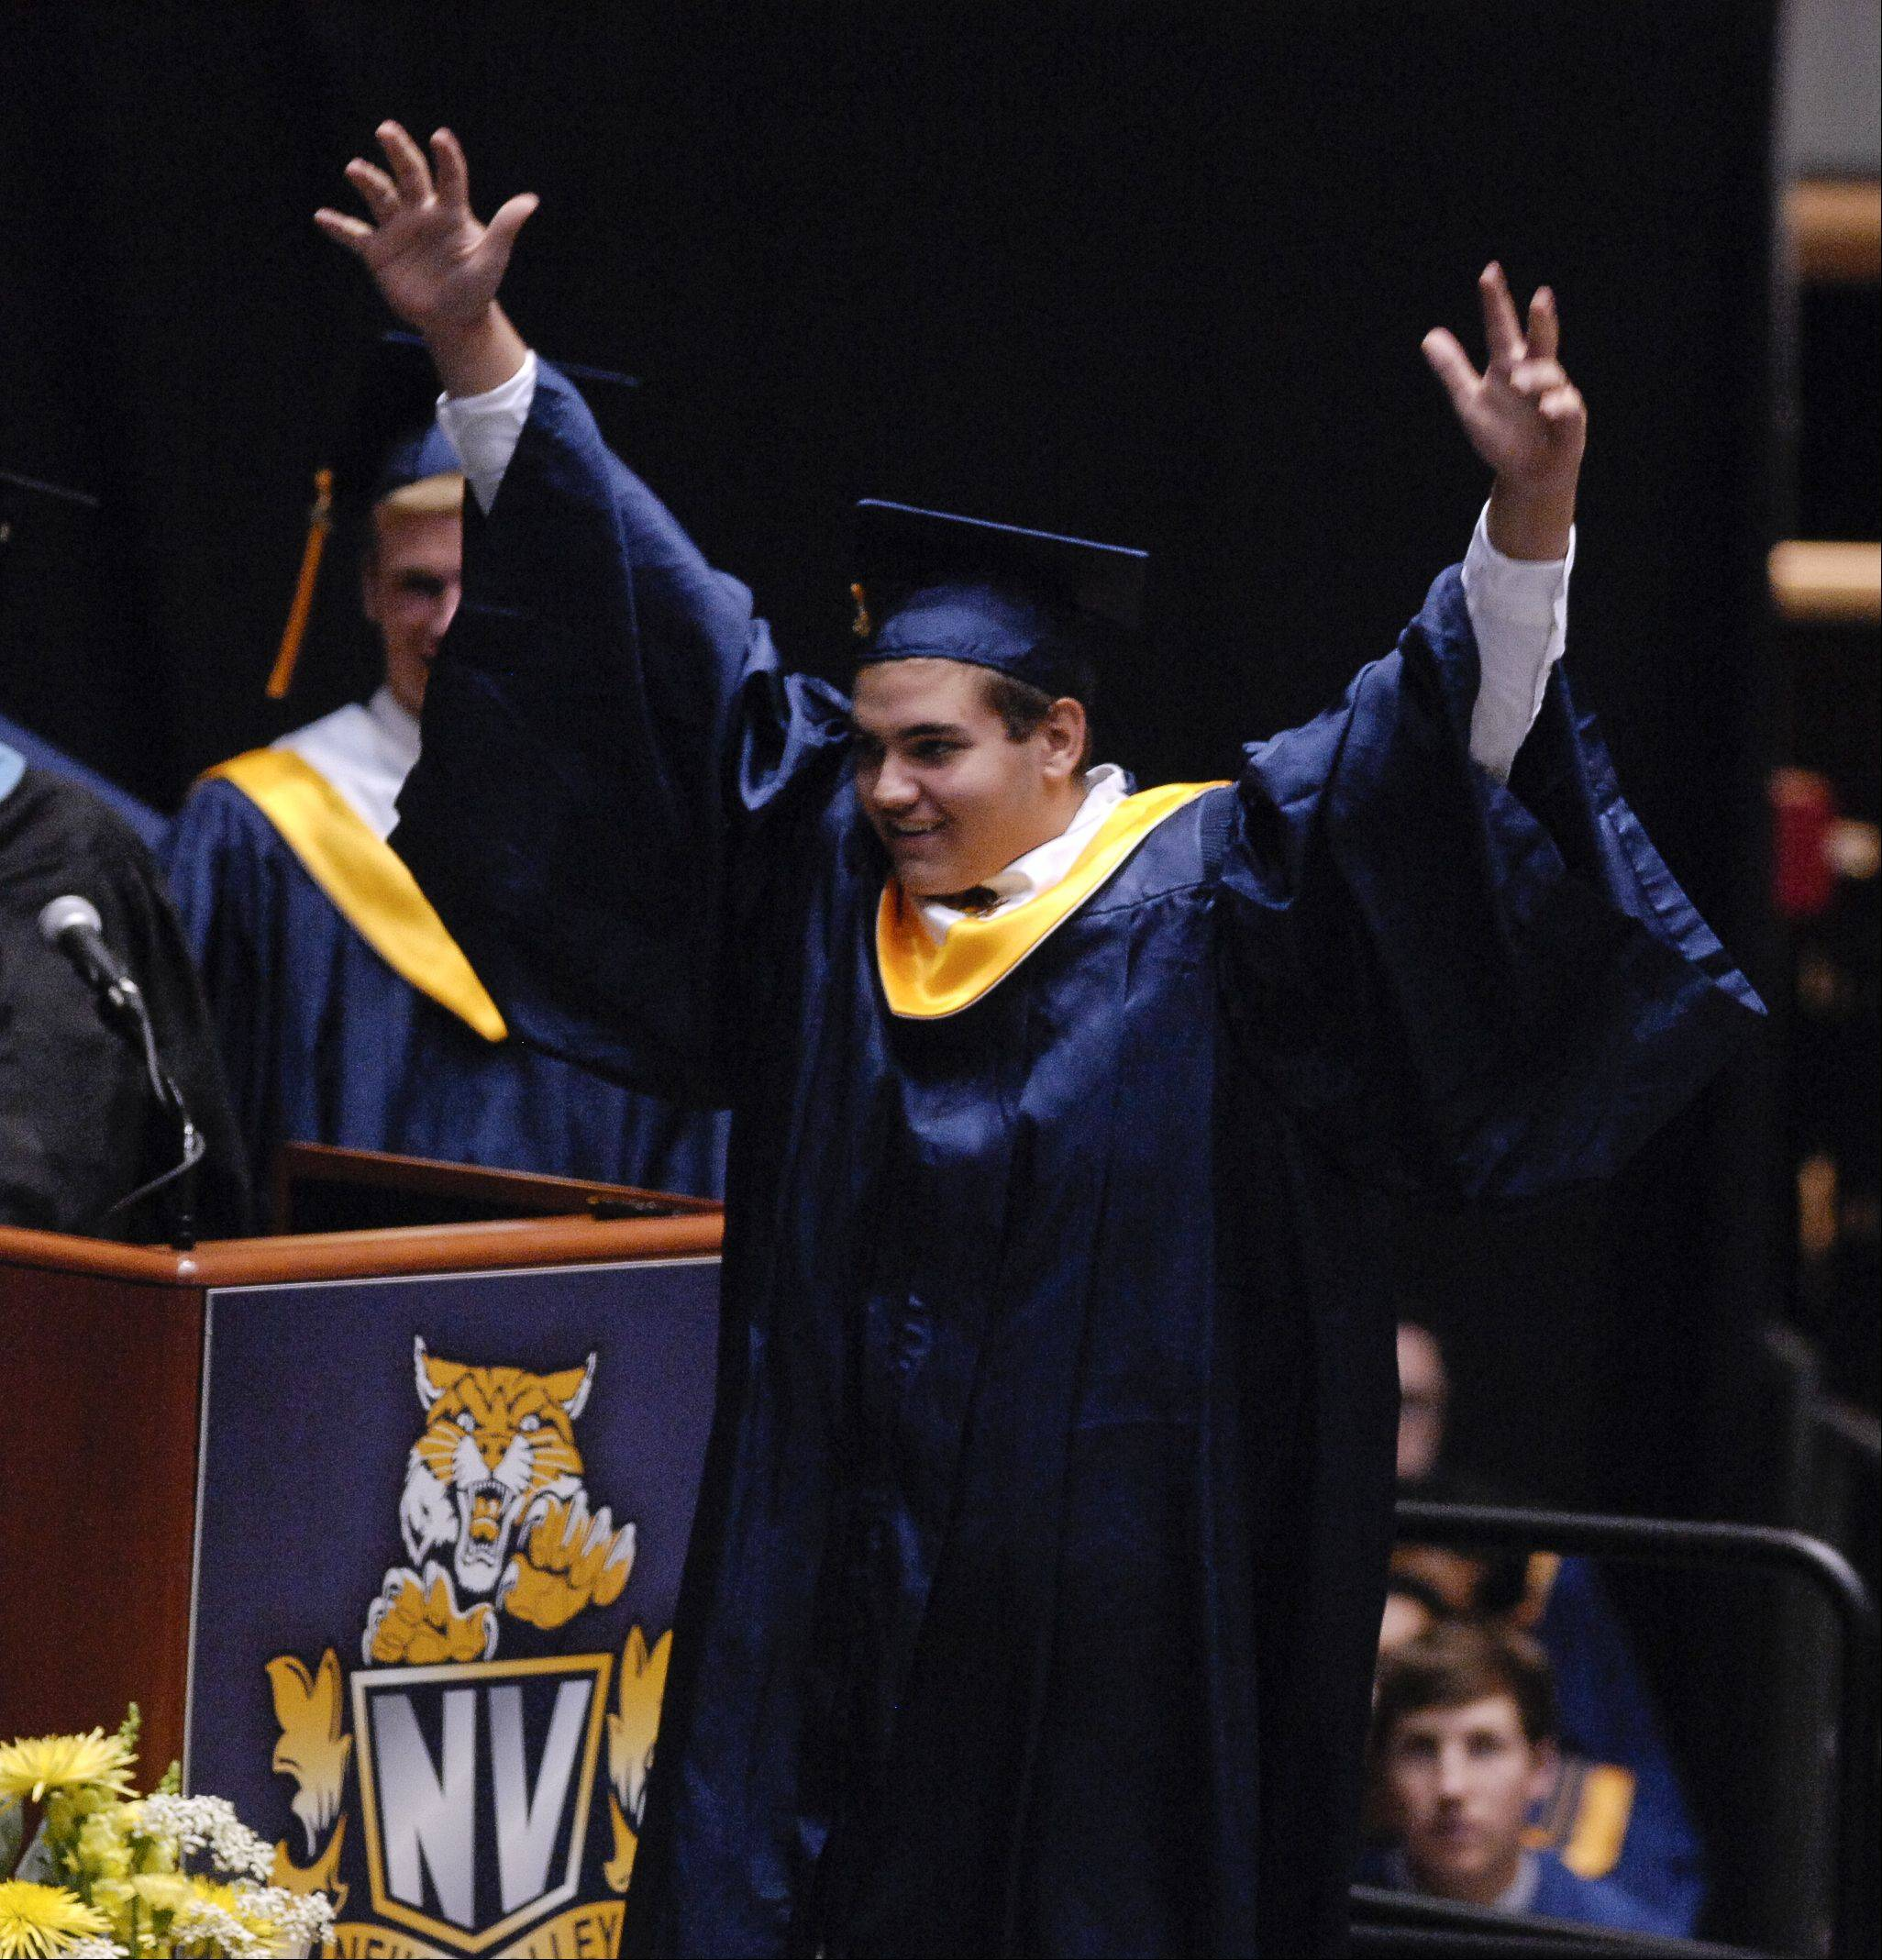 Graduate Zachary Thomas cheers as his name is called during the Neuqua Valley High School graduation on Sunday, May 26 at the NIU Convocation Center in DeKalb.